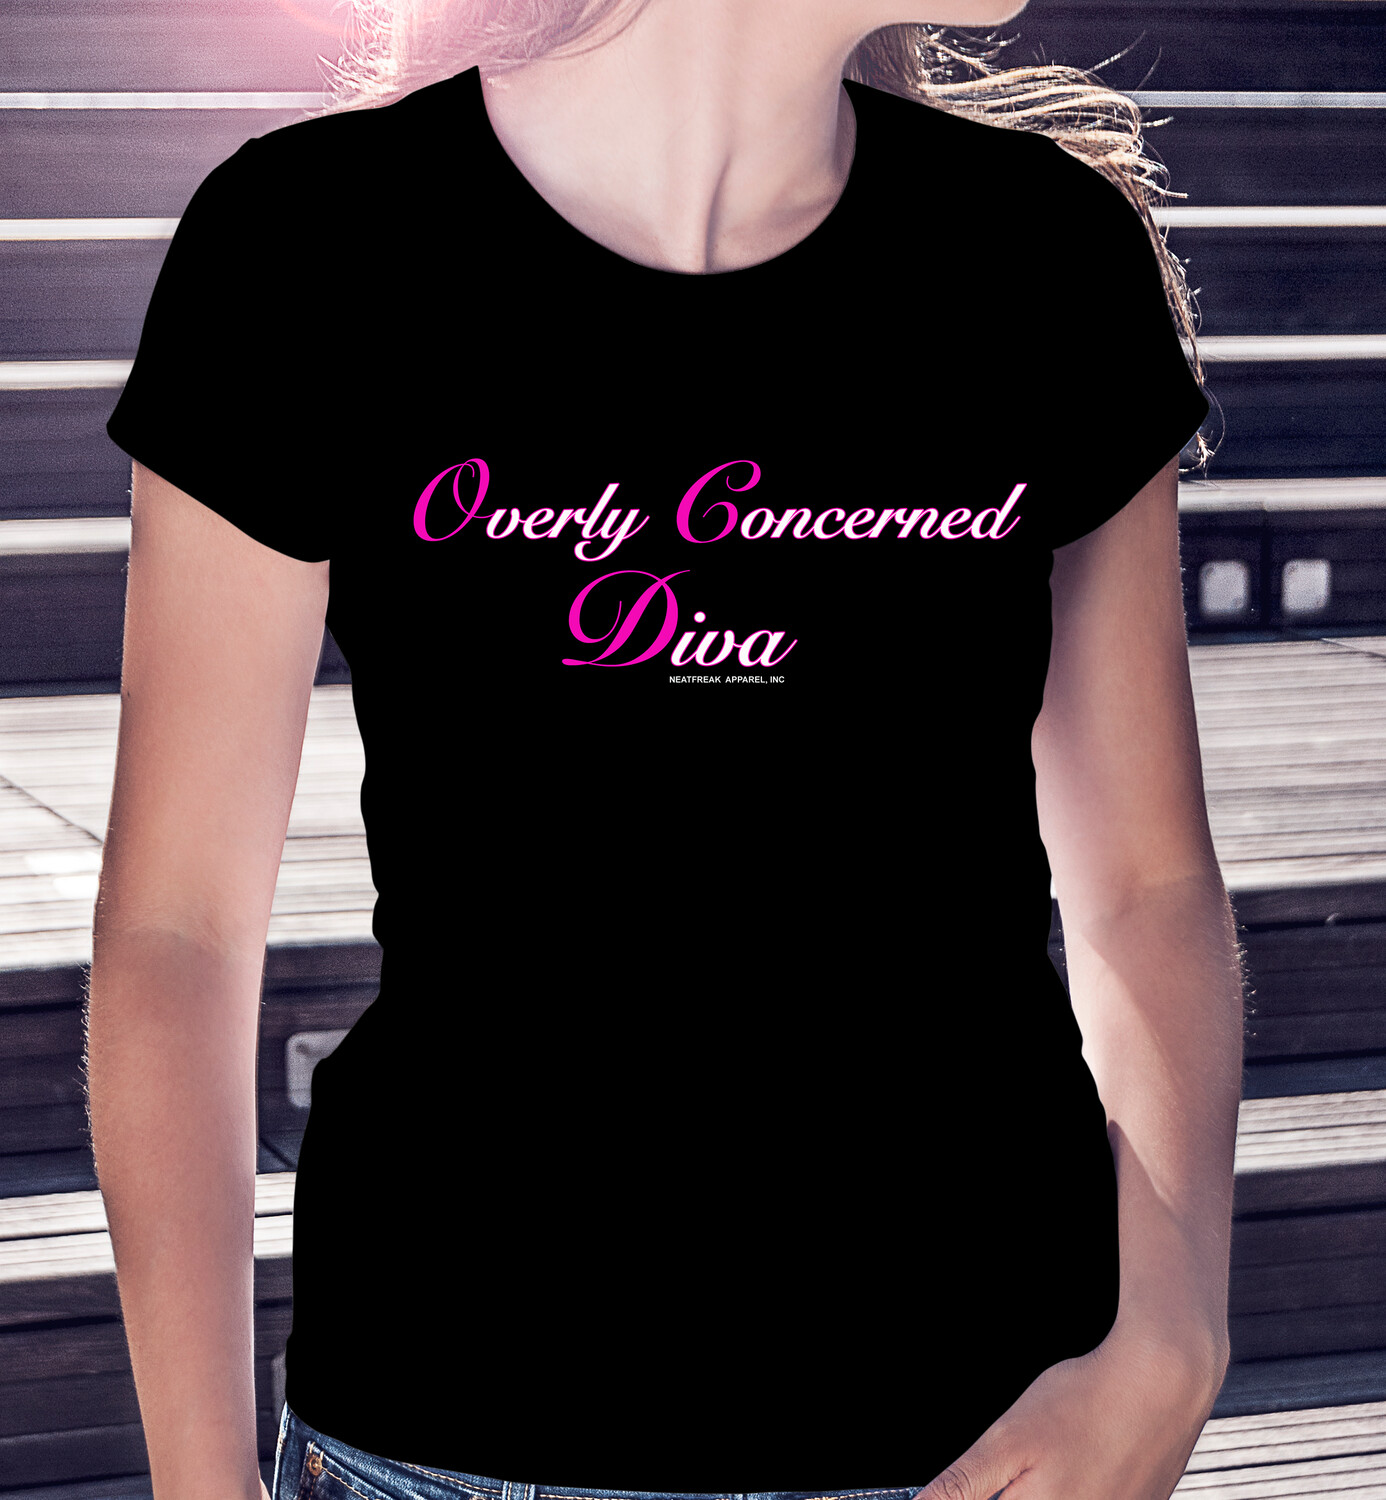 """(OCD) """"Overly Concerned Diva"""" - DARK CLASSIC WOMAN'S TEE [3 Colors]"""